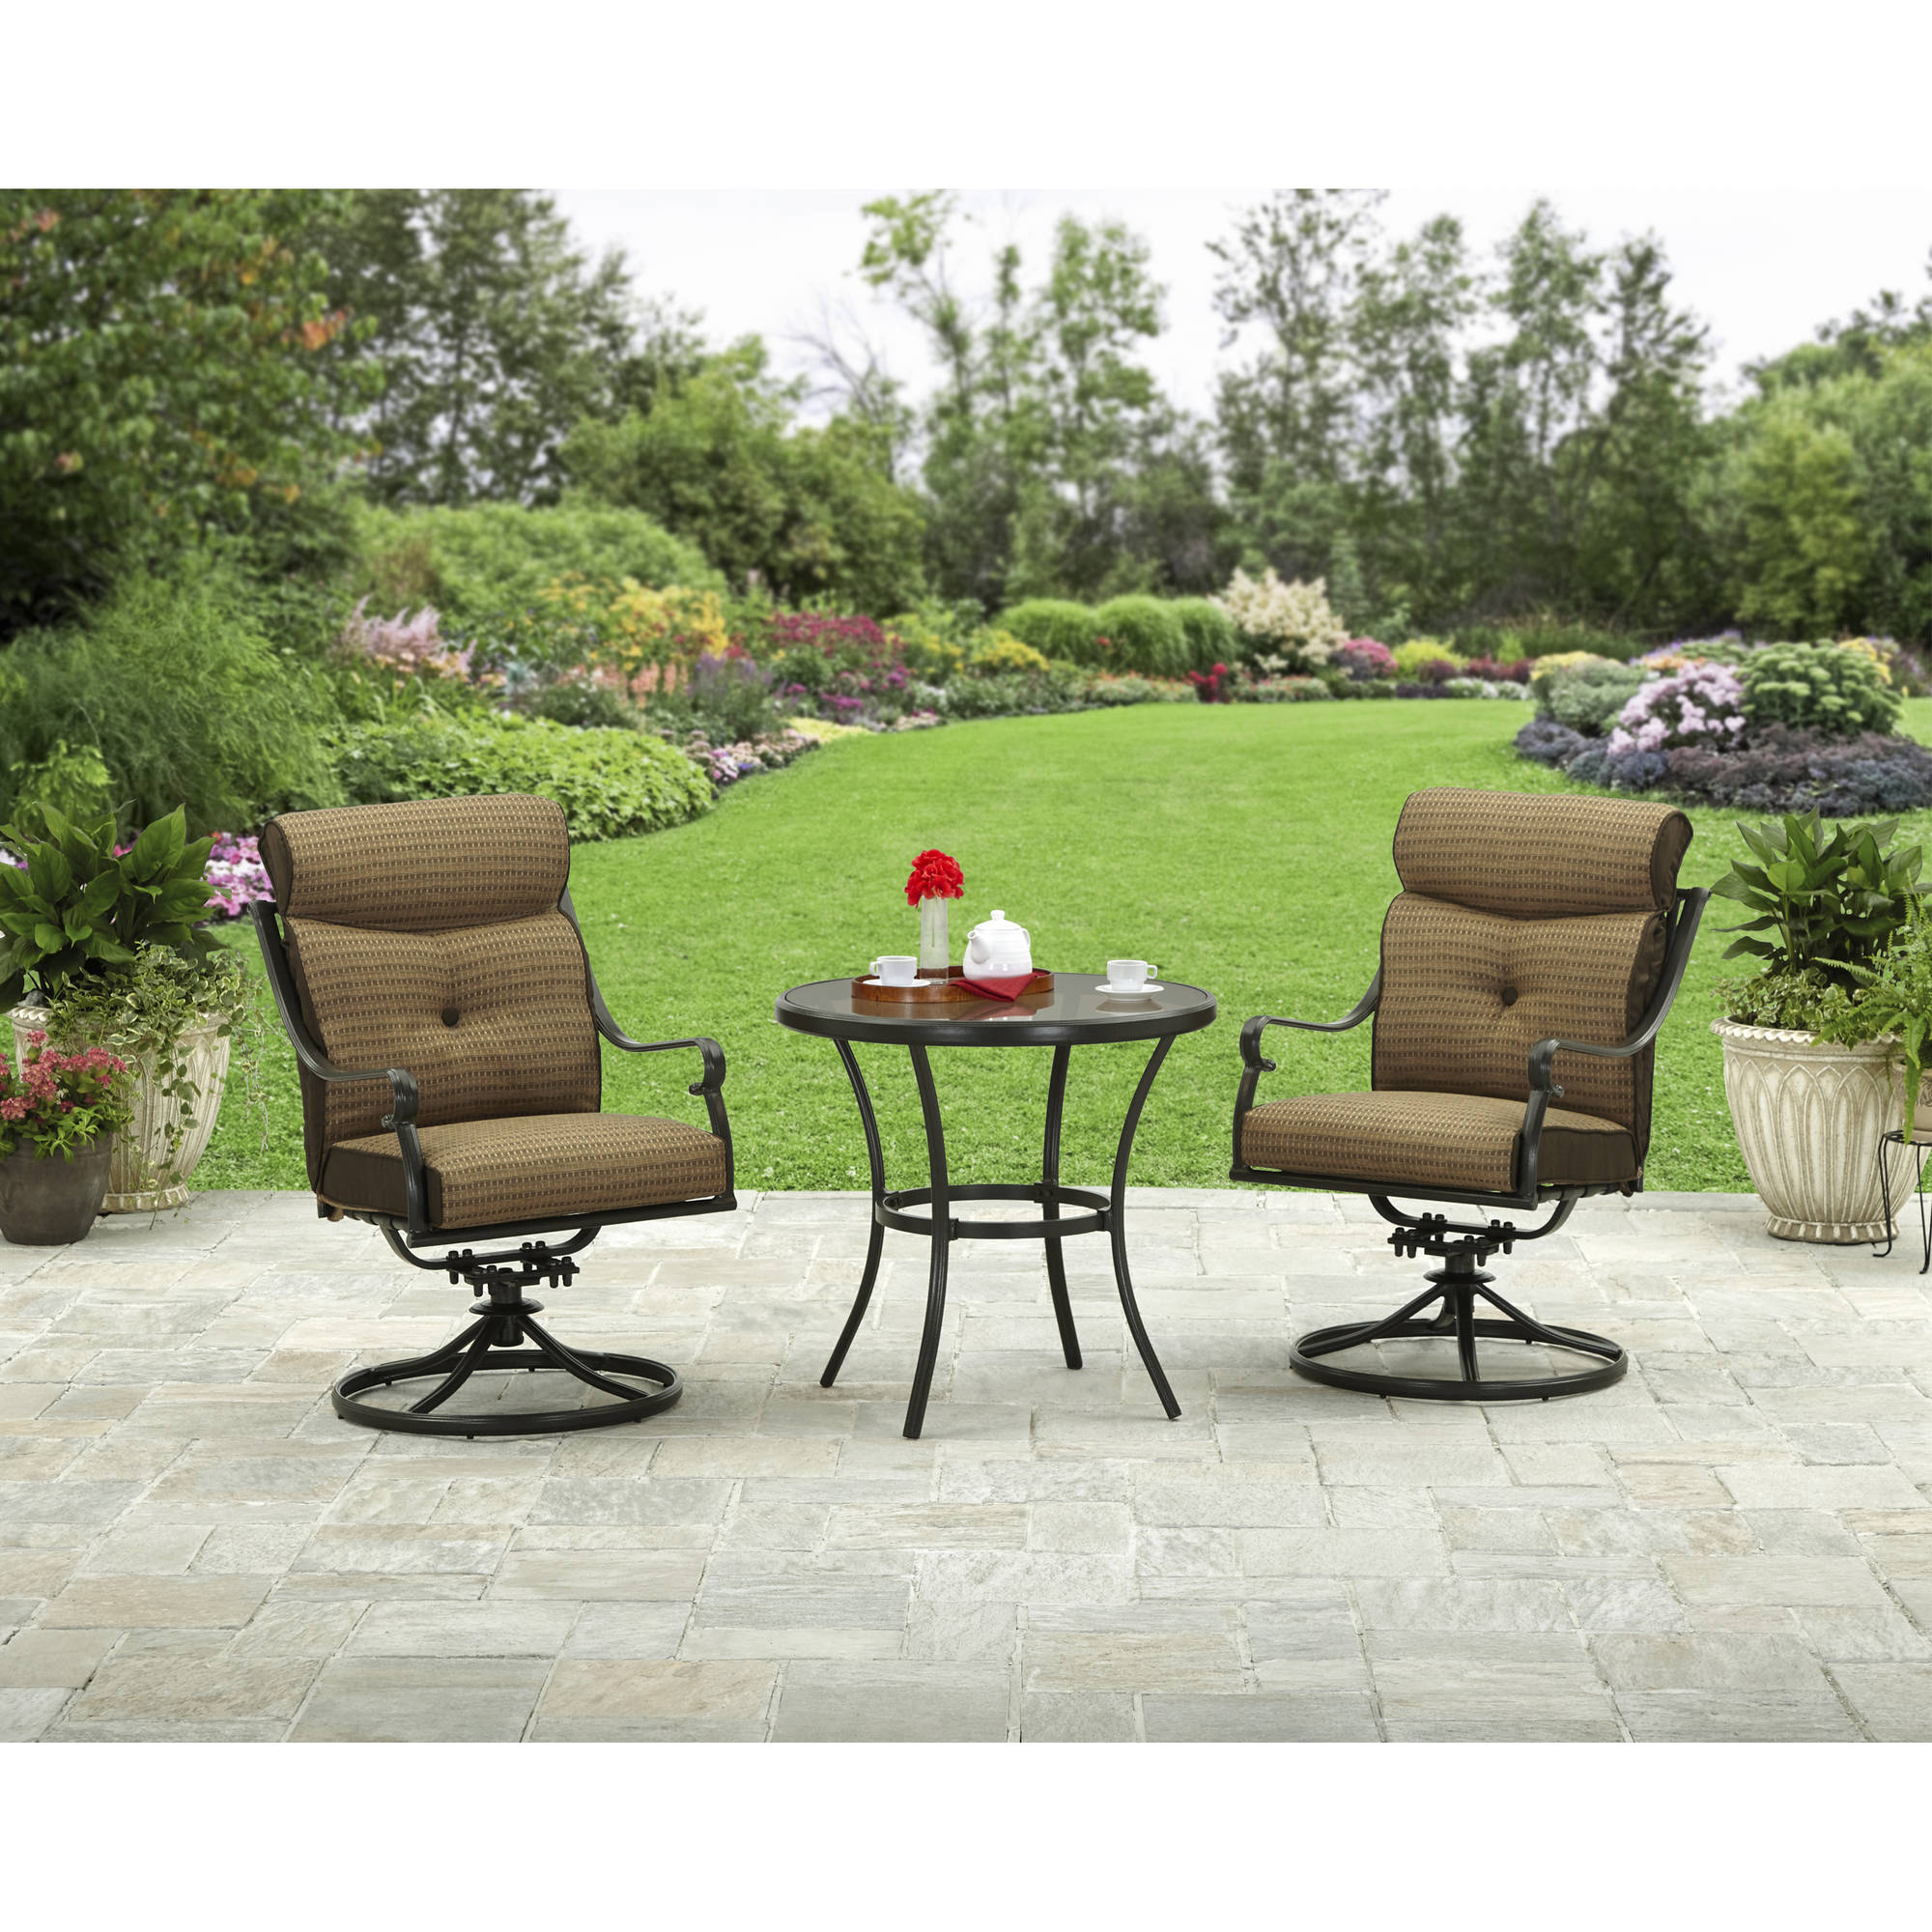 Better Homes and Gardens Bailey Ridge 3-Piece Aluminum Bistro Set